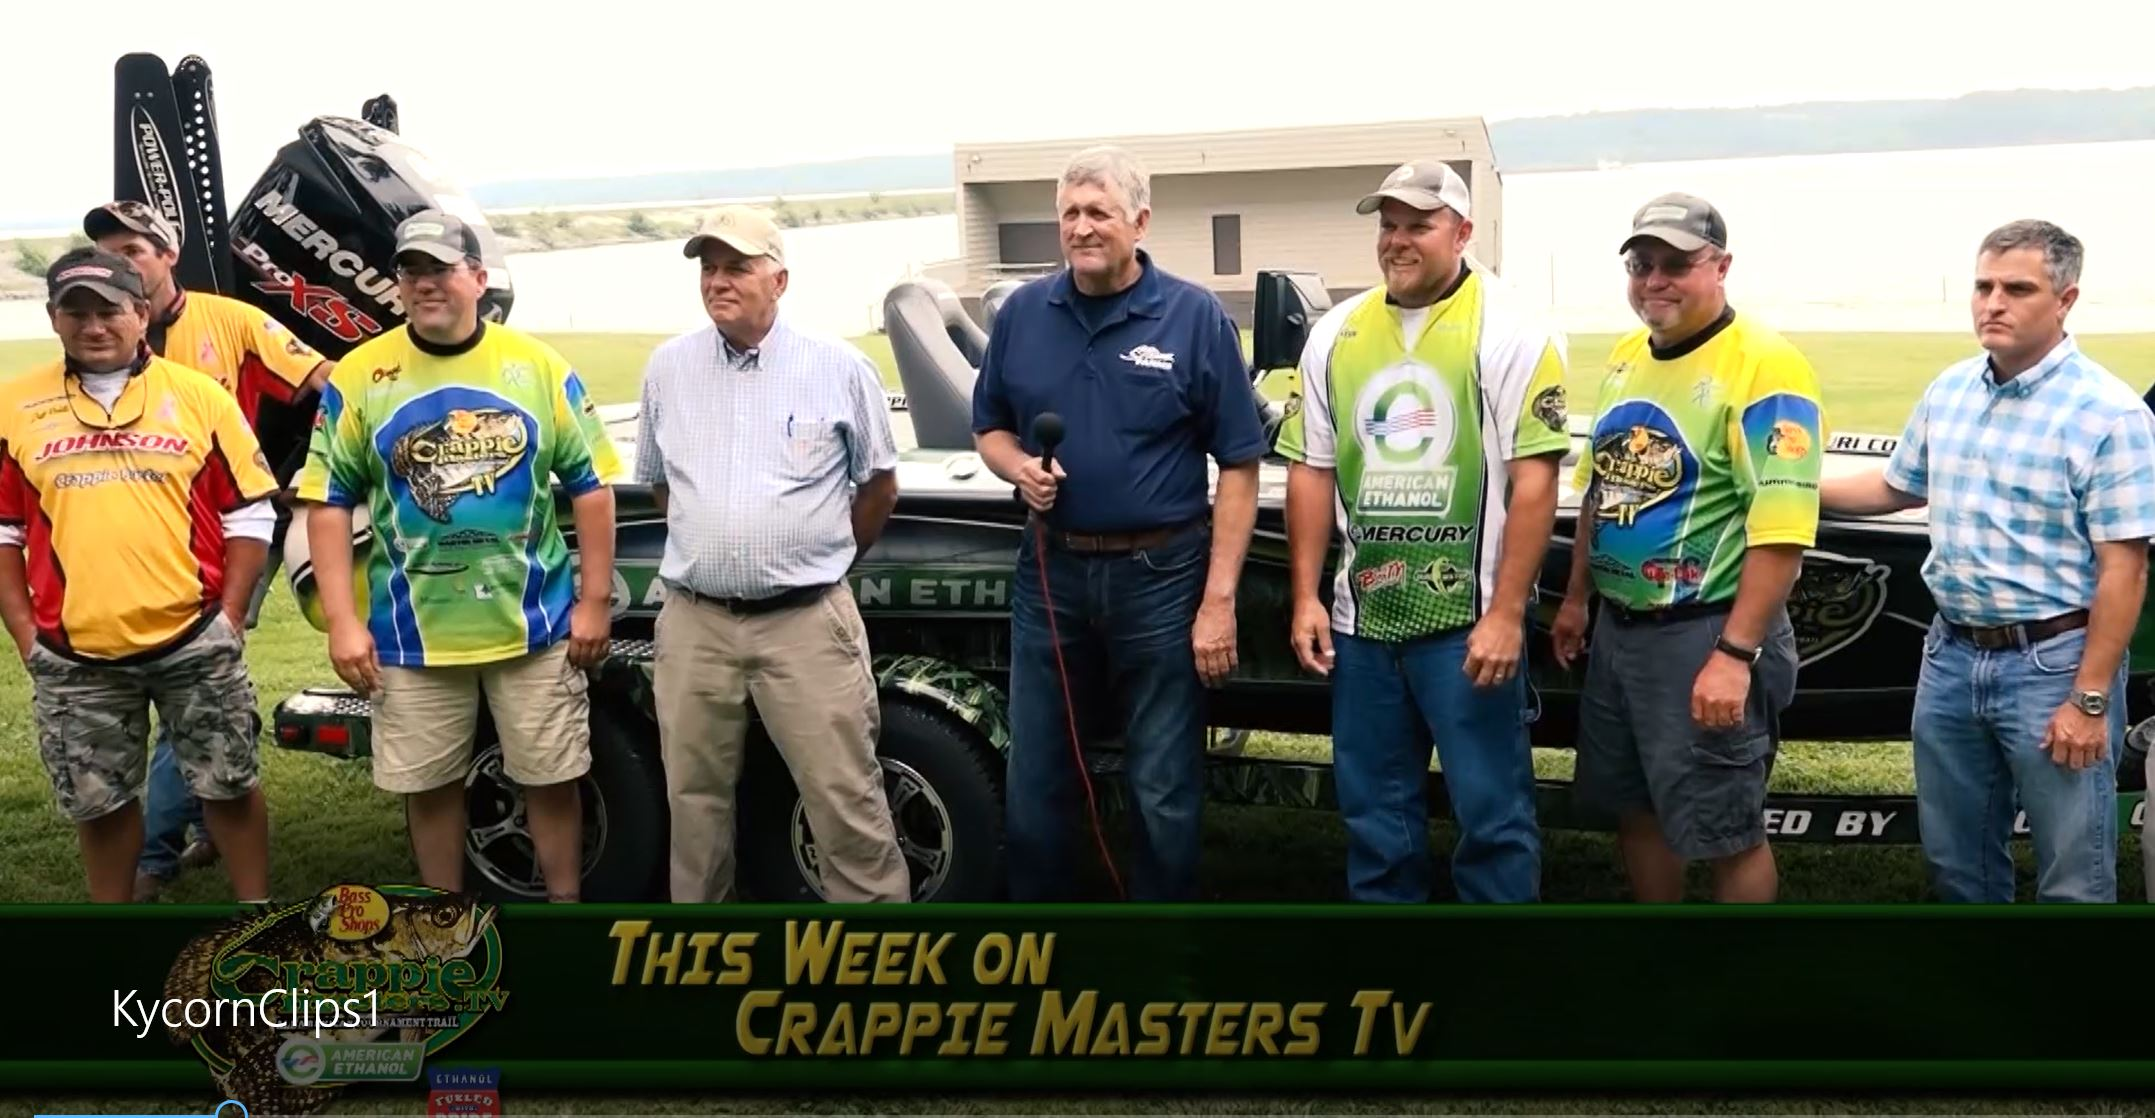 KyCorn leaders participated in a Crappie Masters media event.